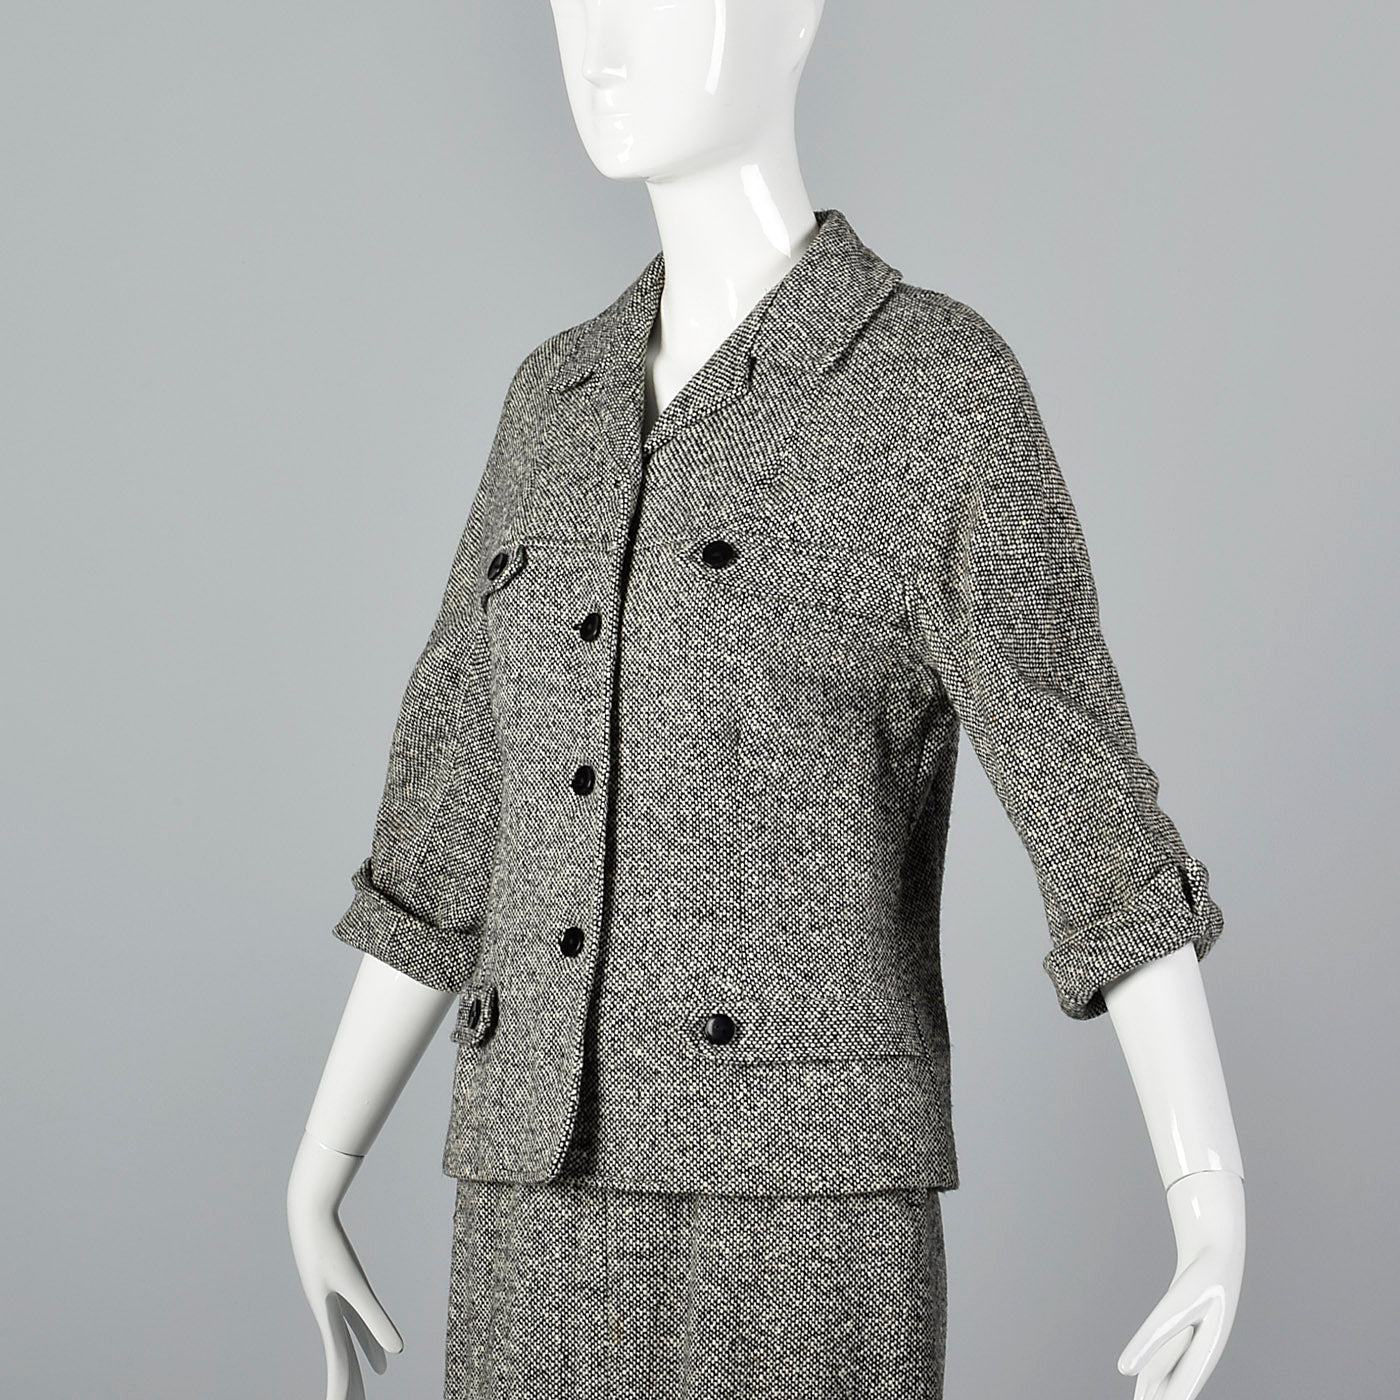 1960s Black and White Tweed Skirt Suit with Red Lining